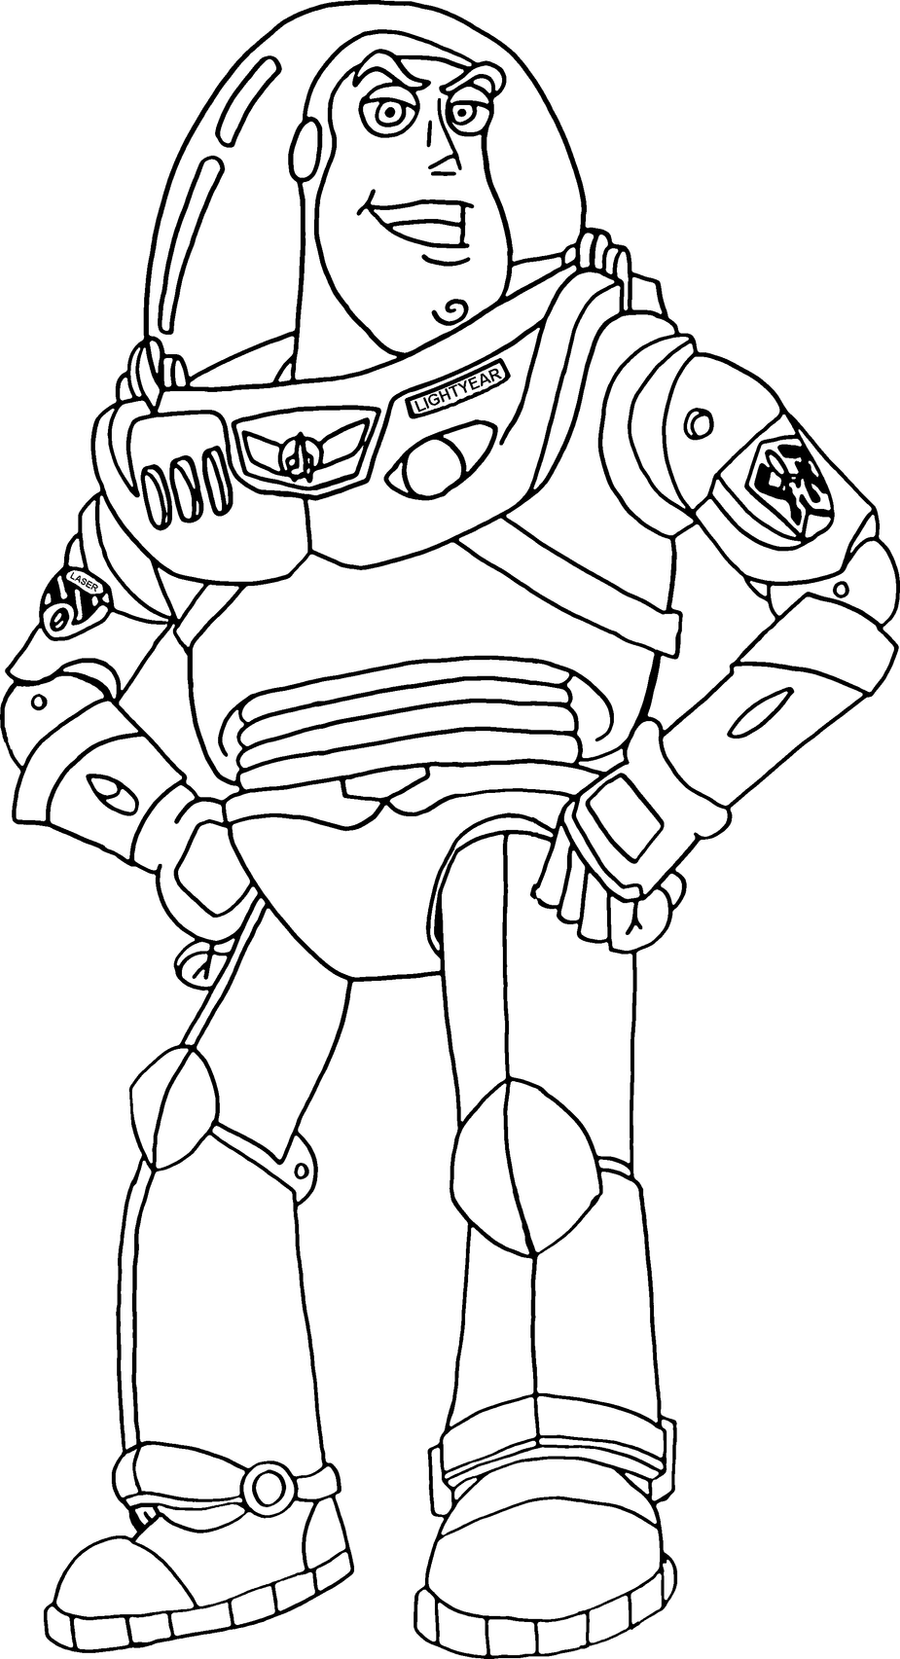 Buzz Lightyear Outline By RyanH1984 On DeviantARTBuzz Lightyear Face Drawing